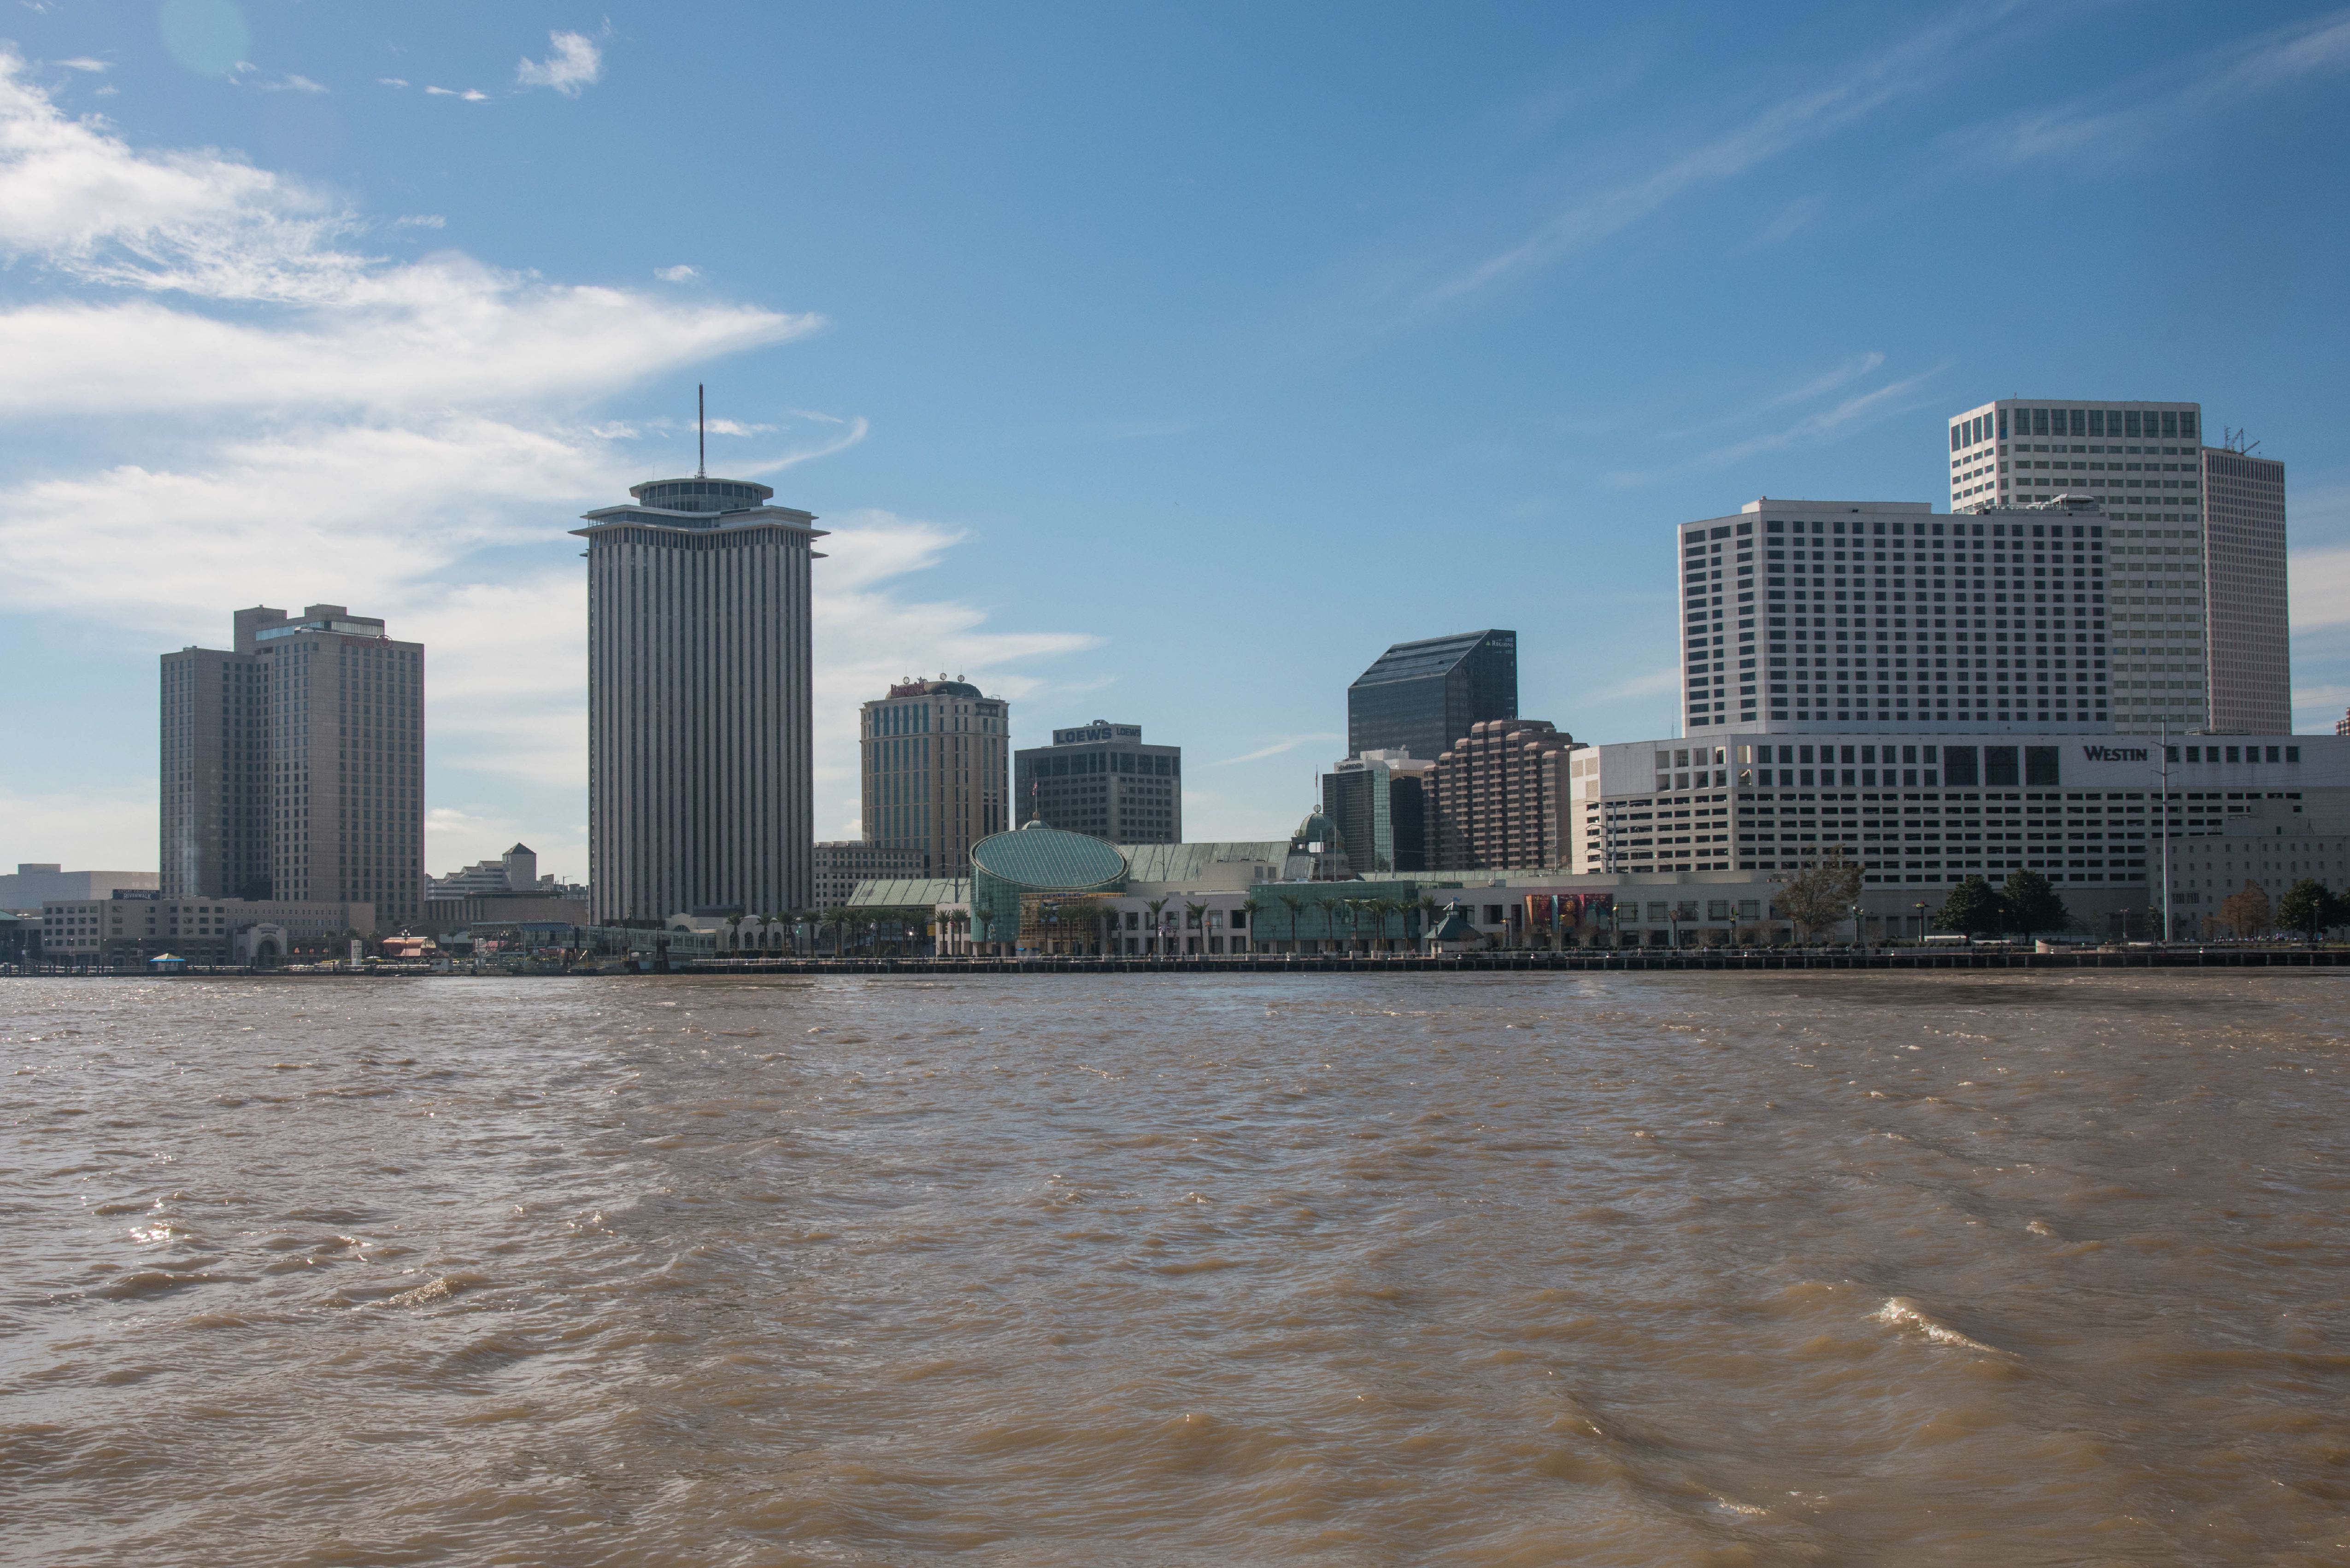 New Orleans Waterfront Skyline, Louisiana. (Photo by: Education Images/UIG via Getty Images)